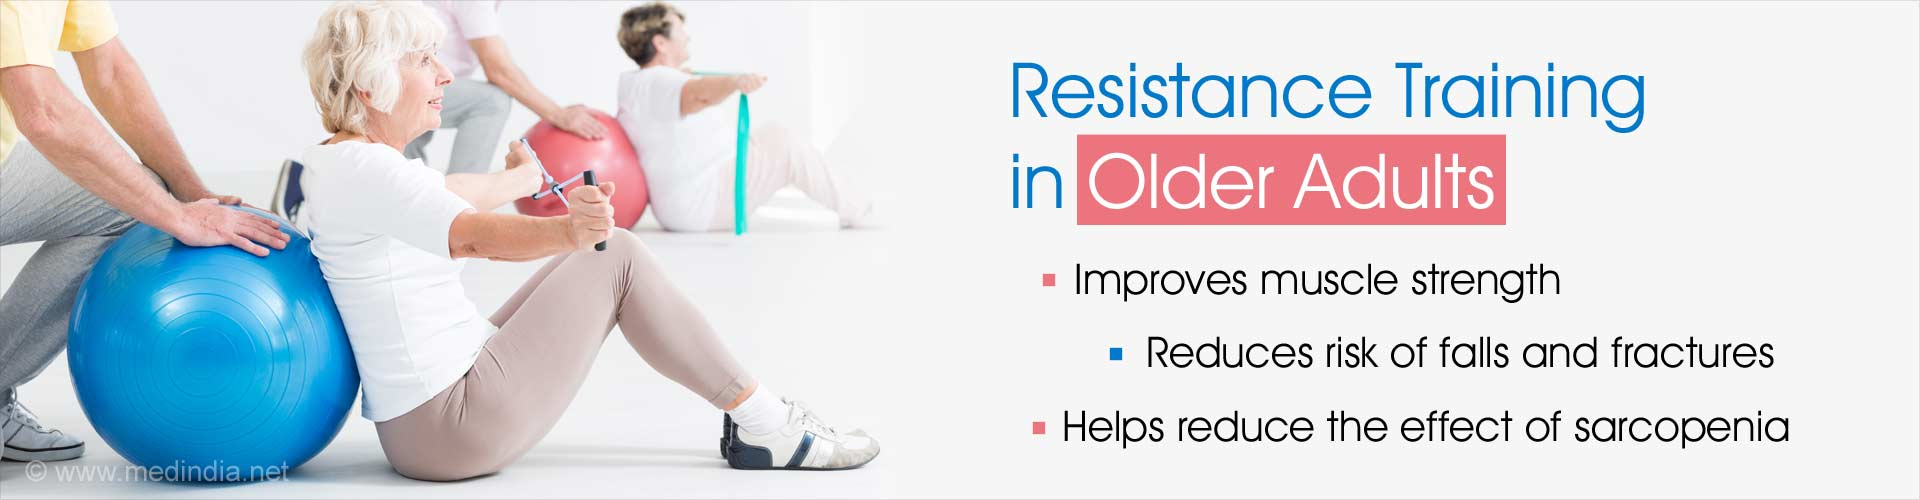 Exercise and Nutritional Intervention May Improve Muscle Mass in Older Adults